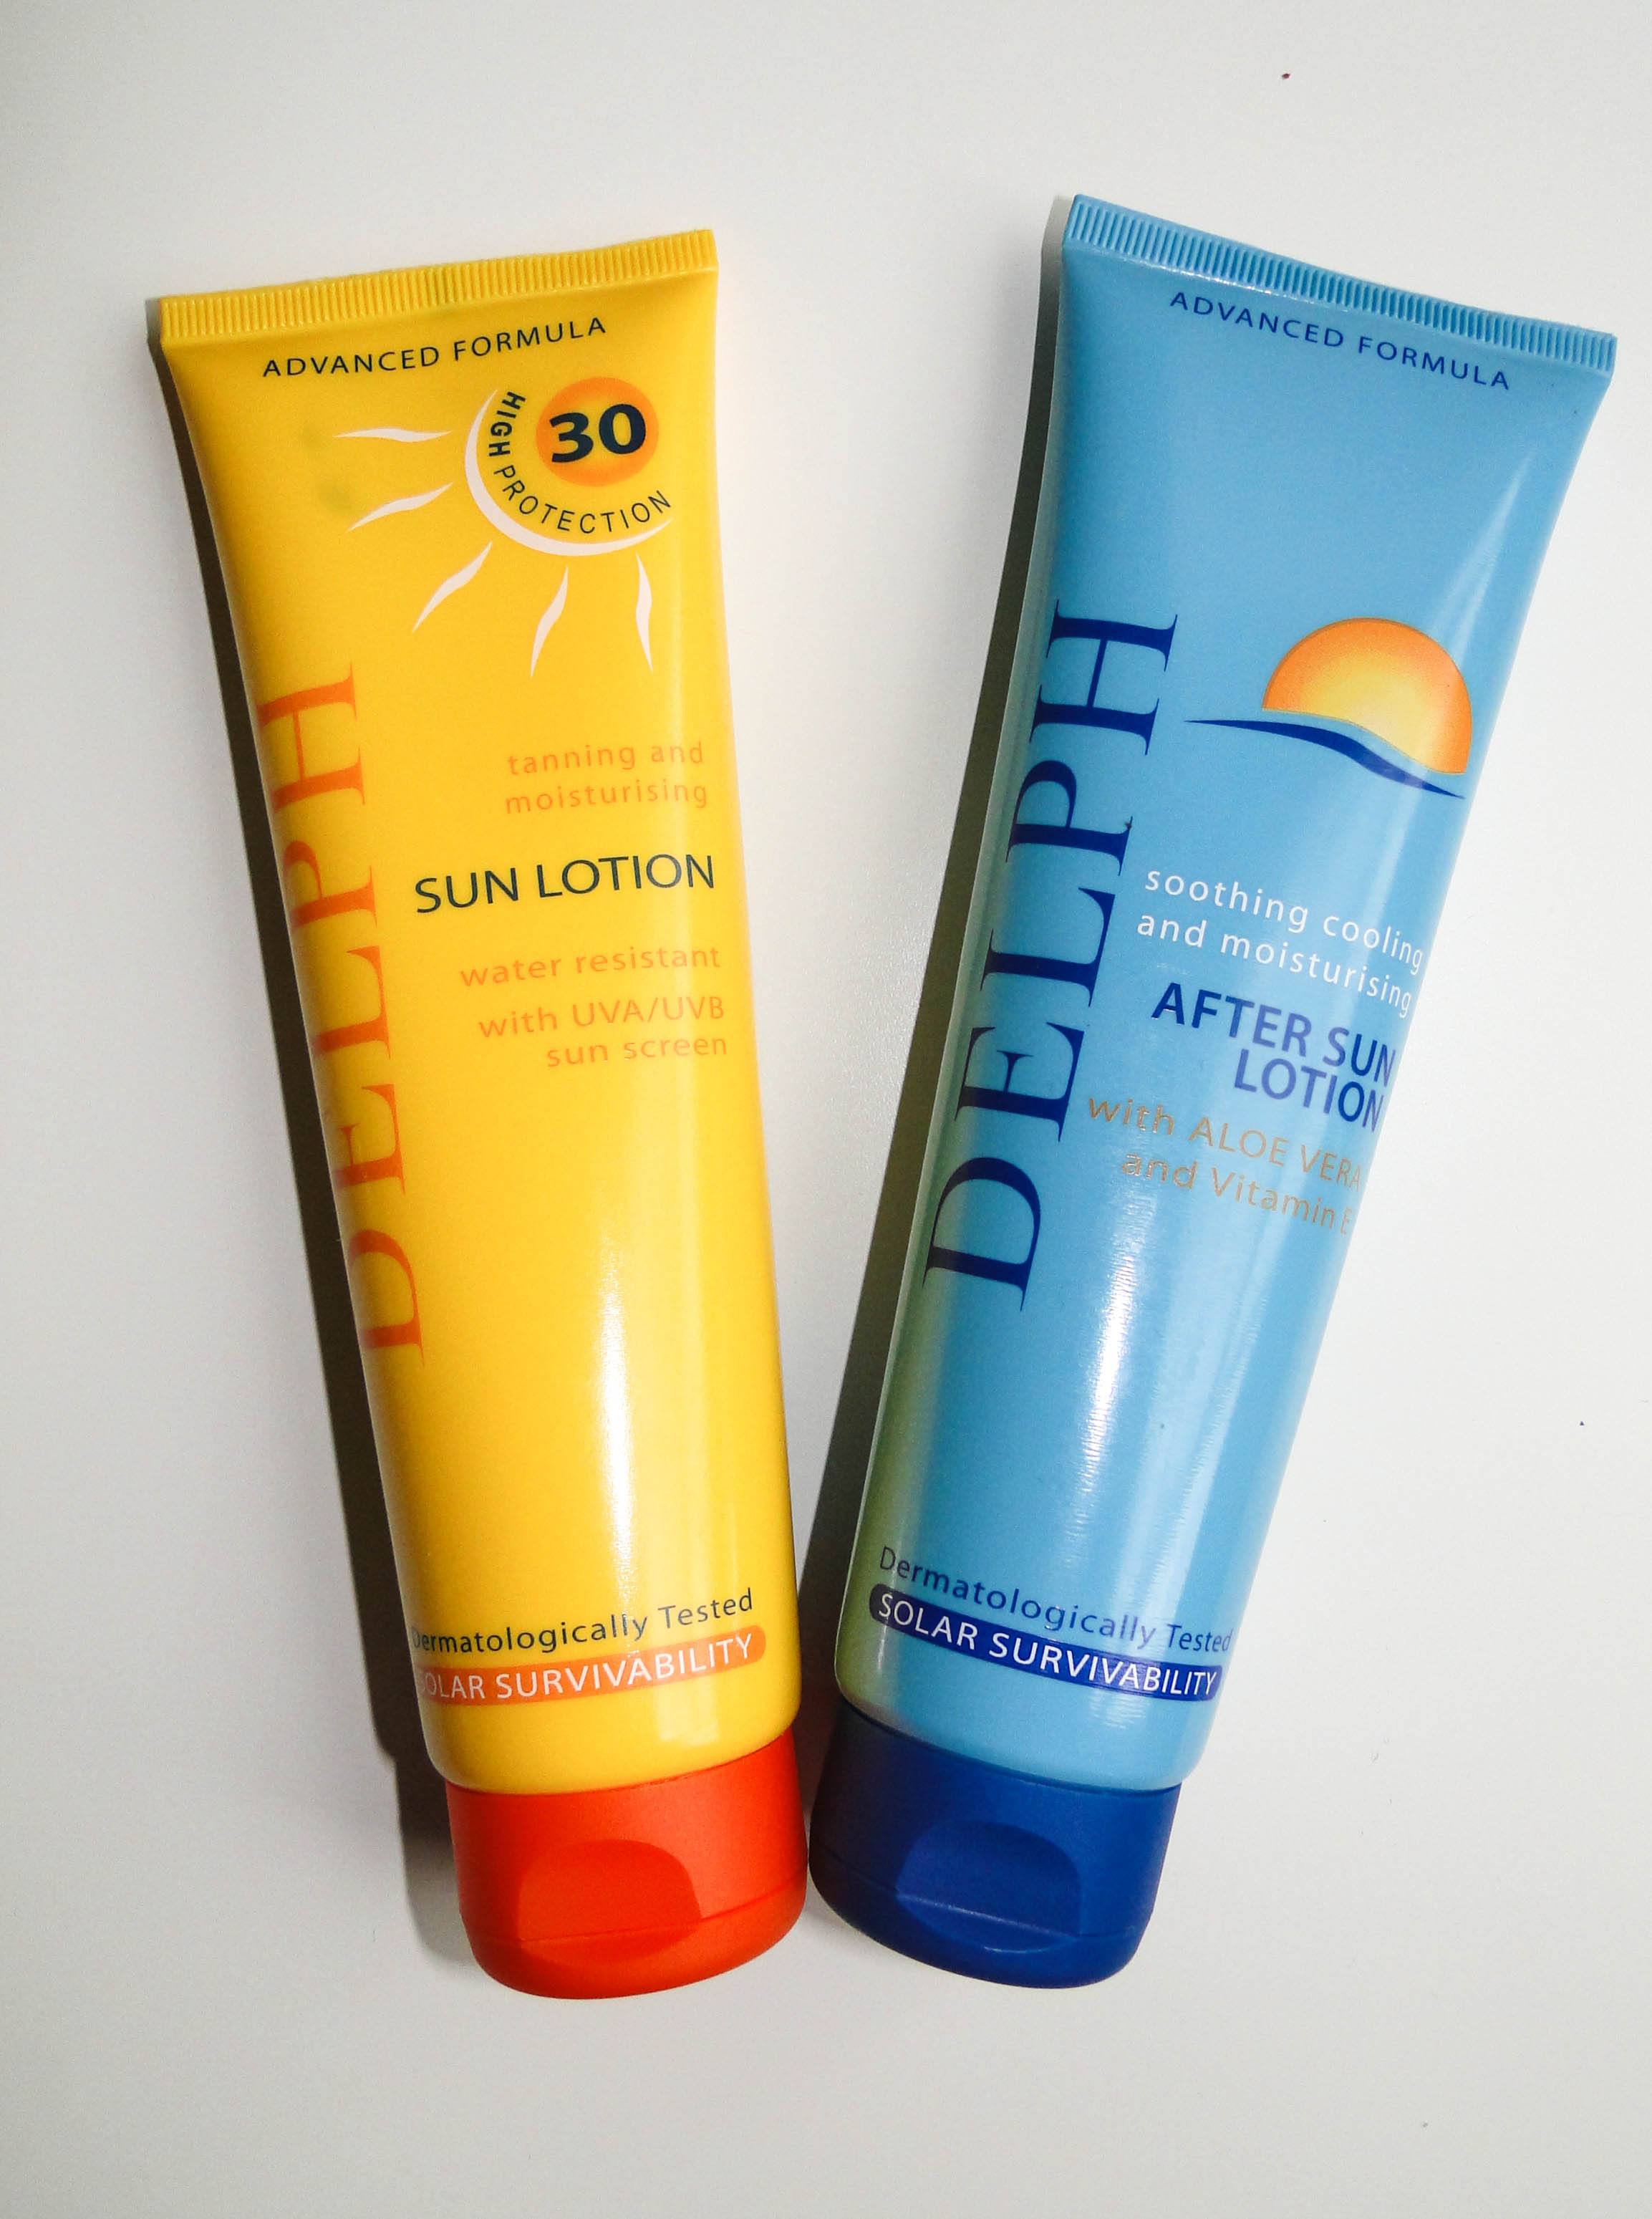 Delph Sunscreen and Aftersun